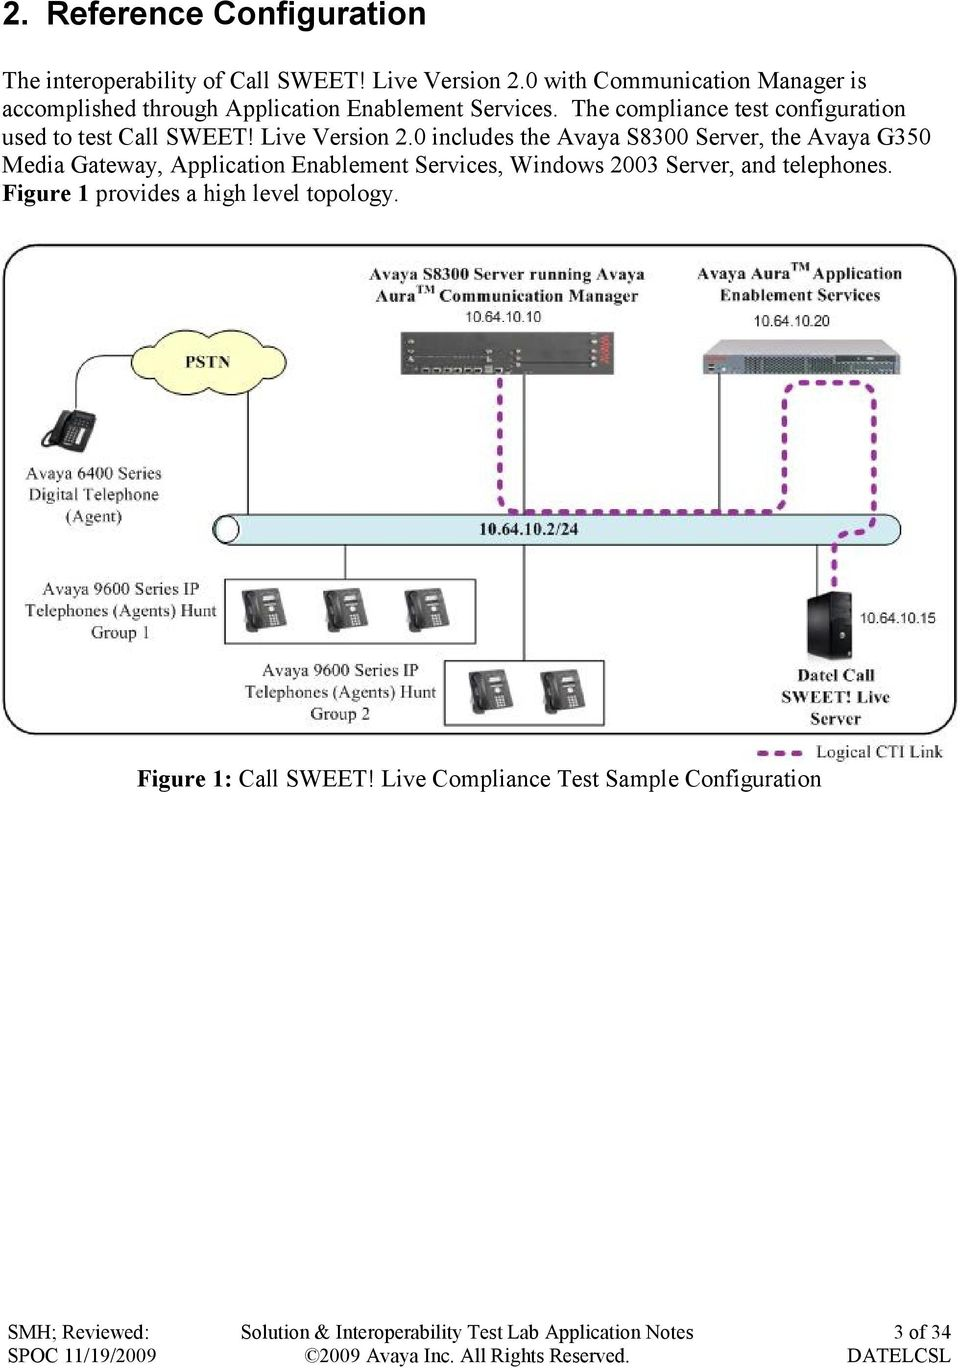 The compliance test configuration used to test Call SWEET! Live Version 2.